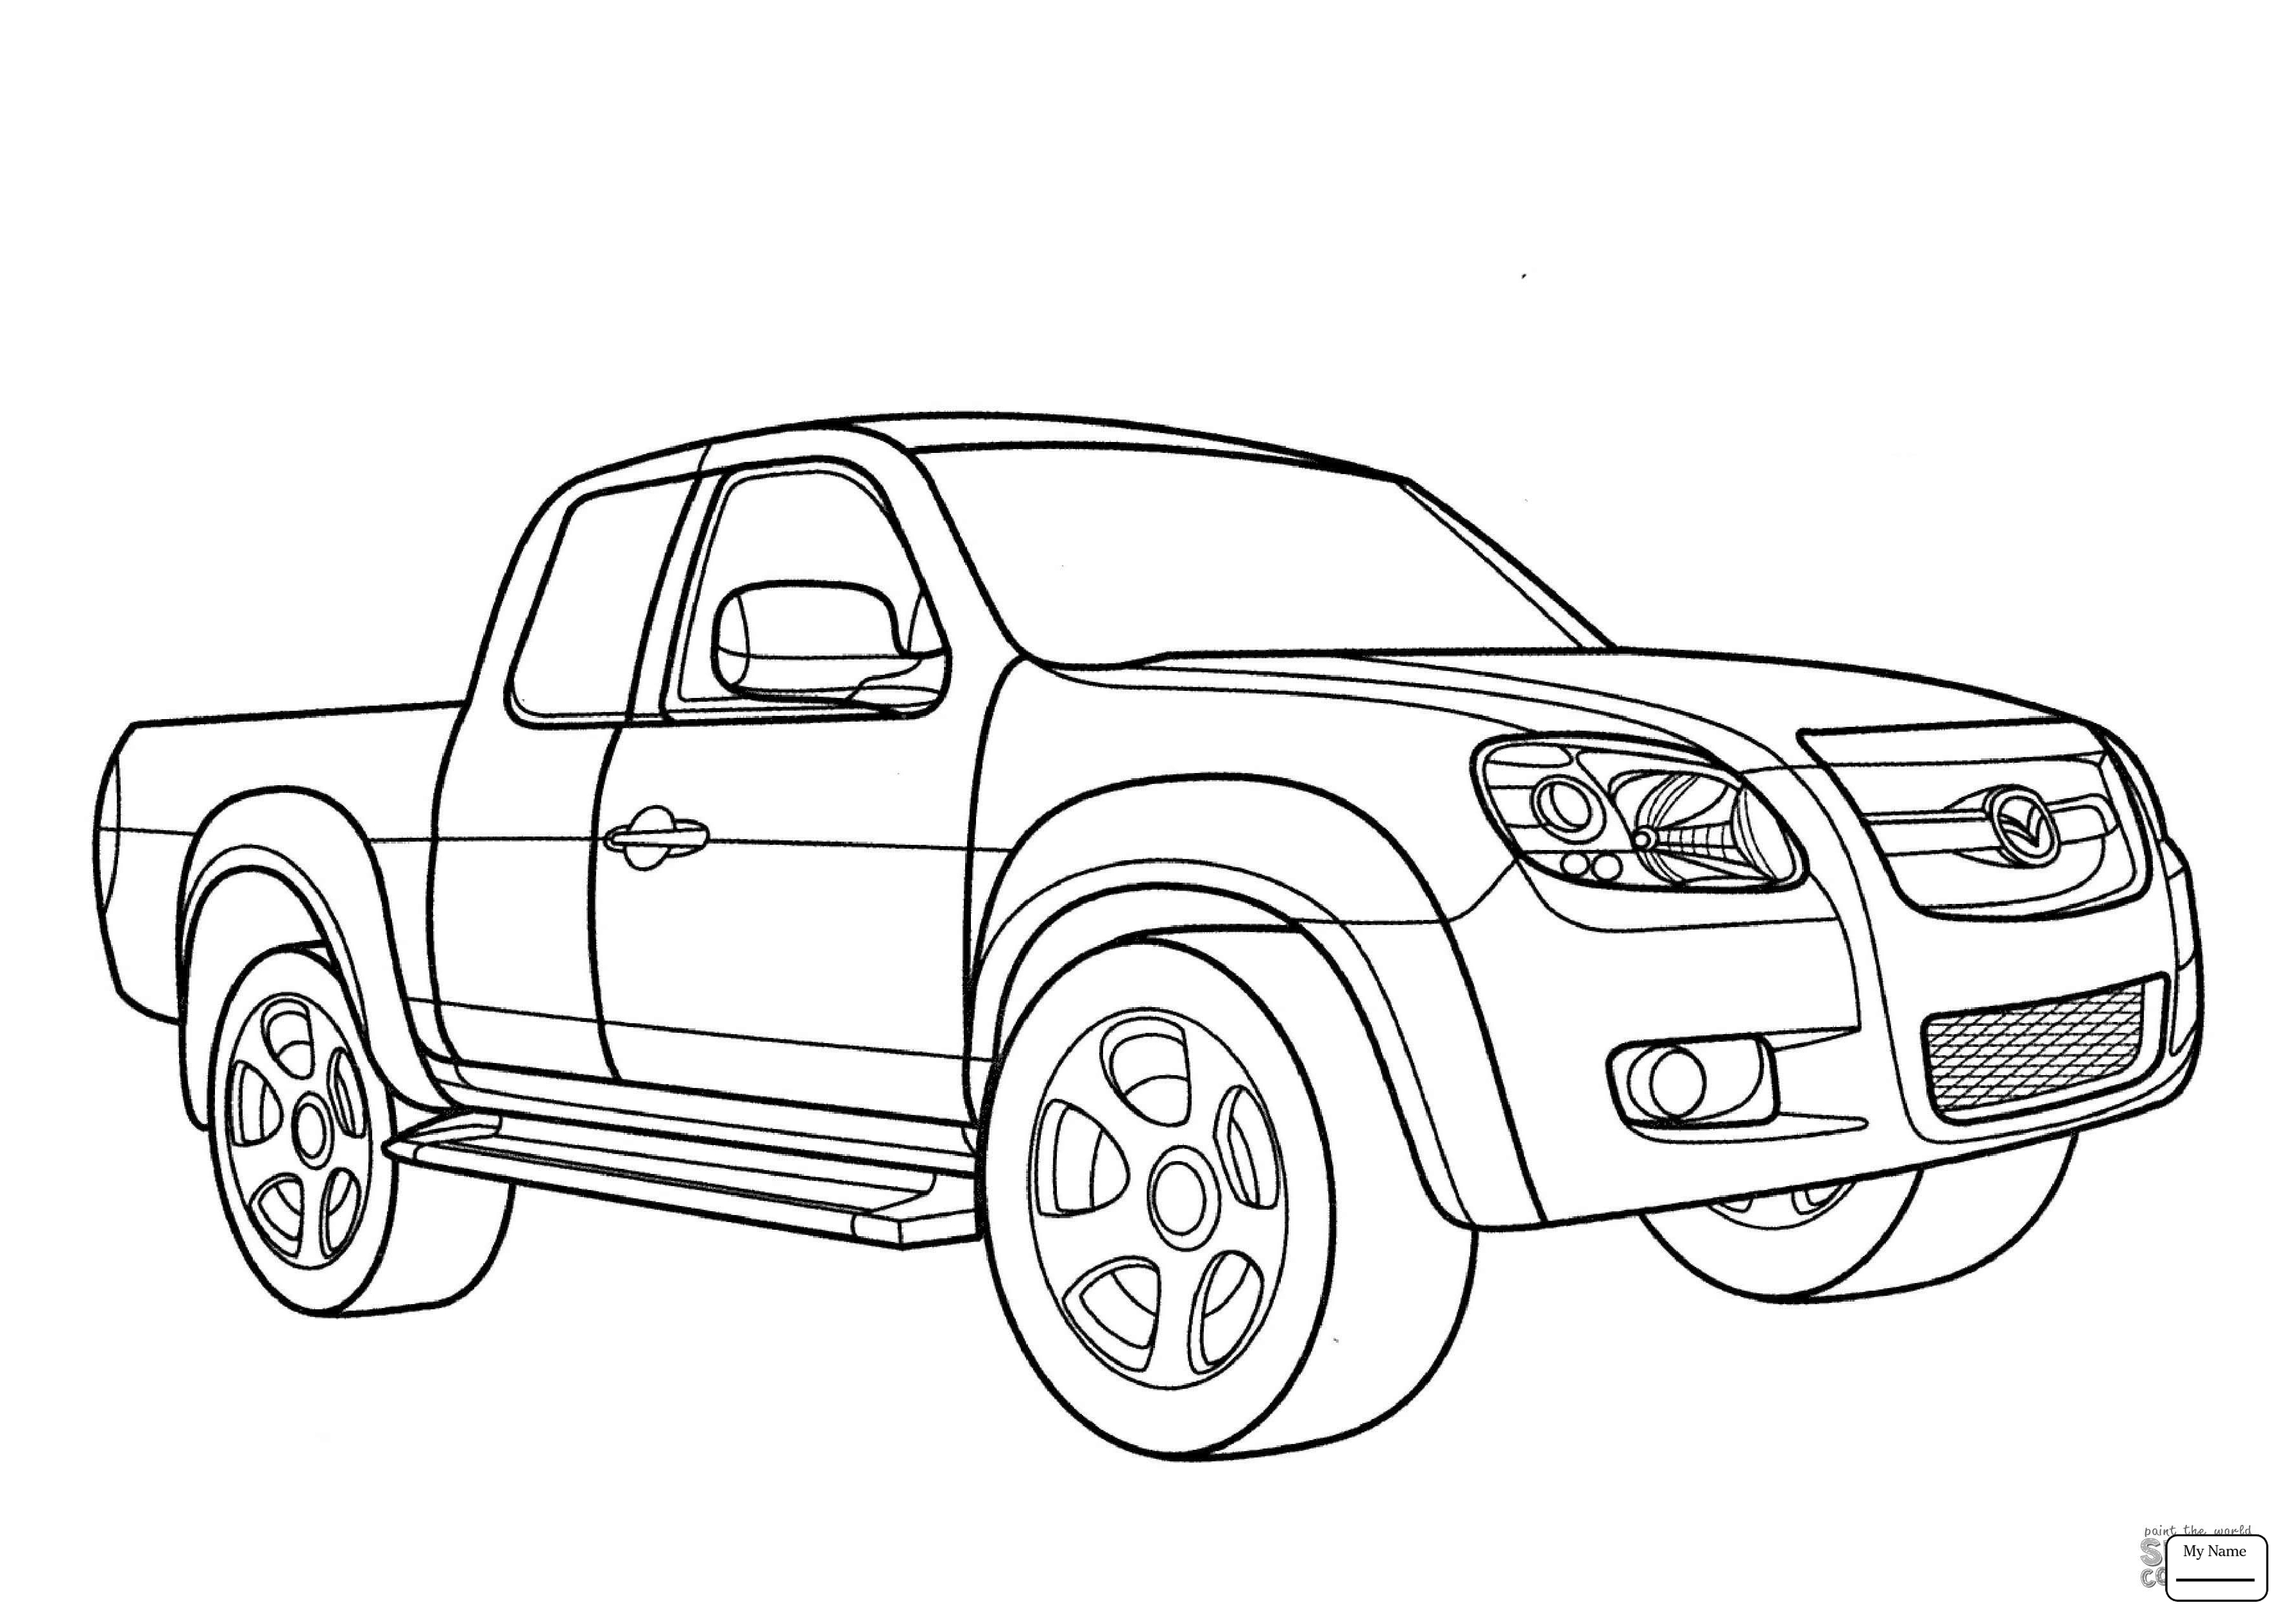 Pickup Truck Drawing At Free For Personal Use 1949 Ford 4x4 Trucks 3578x2530 Mazda Transport 3 Hatchback Coloring Pages